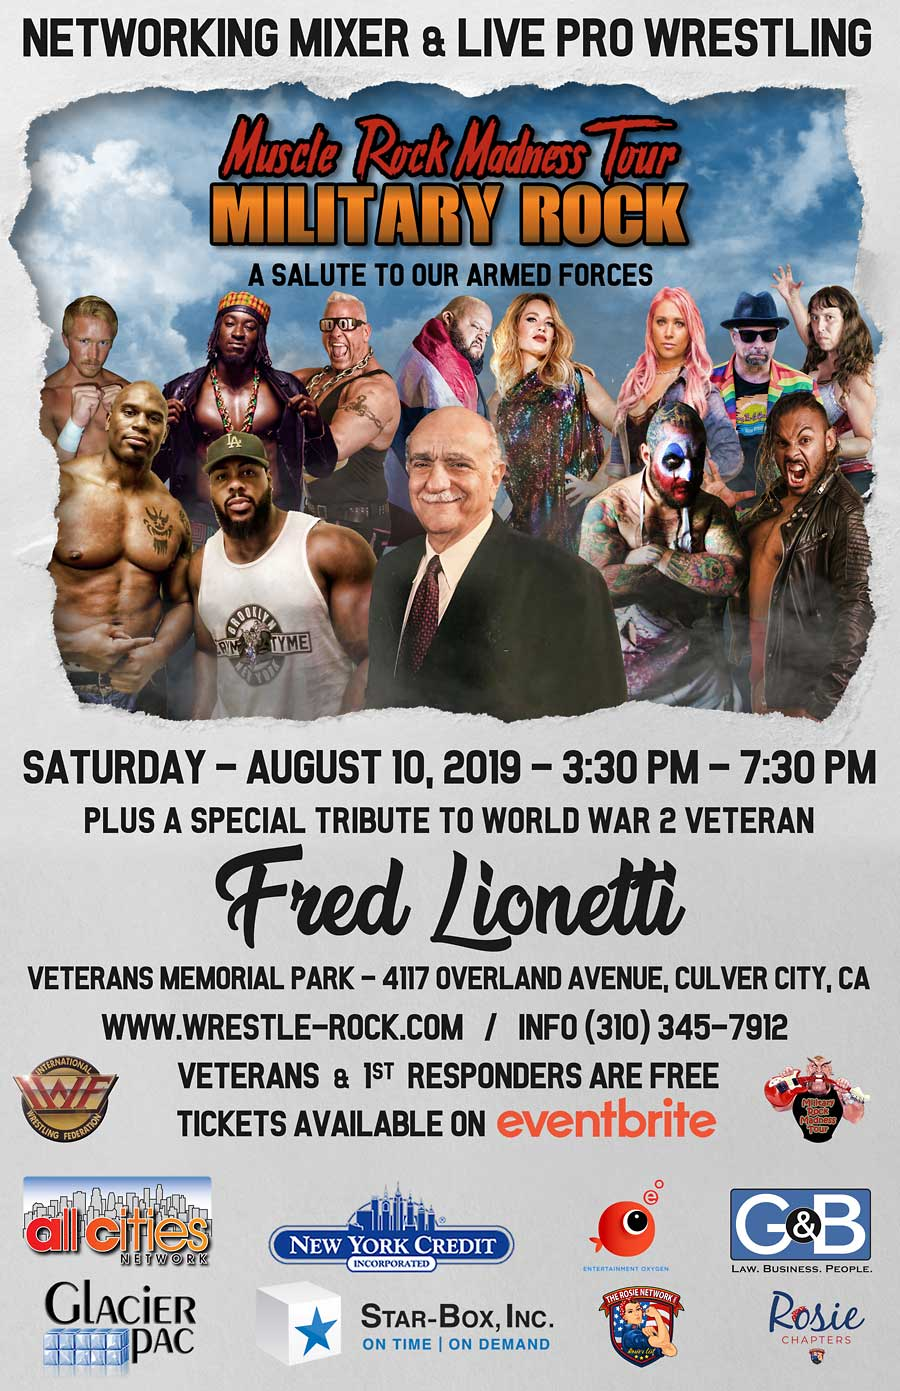 Military Rock Live Pro Wrestling & Concert - August 10th, 2019